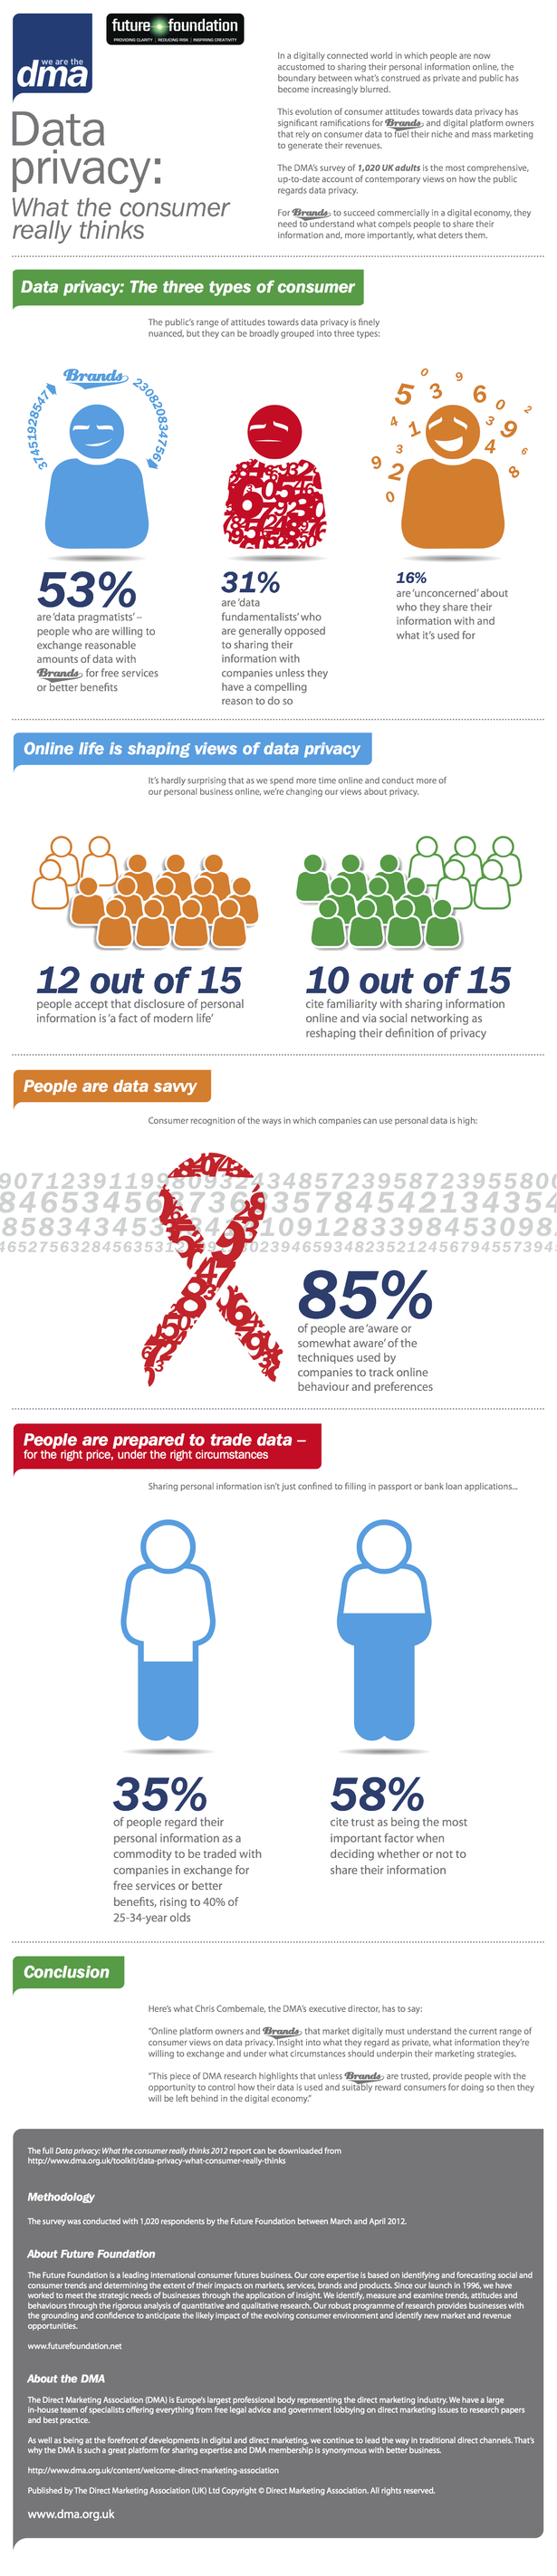 data_privacy_infographic_jun_12__1_-blog-full